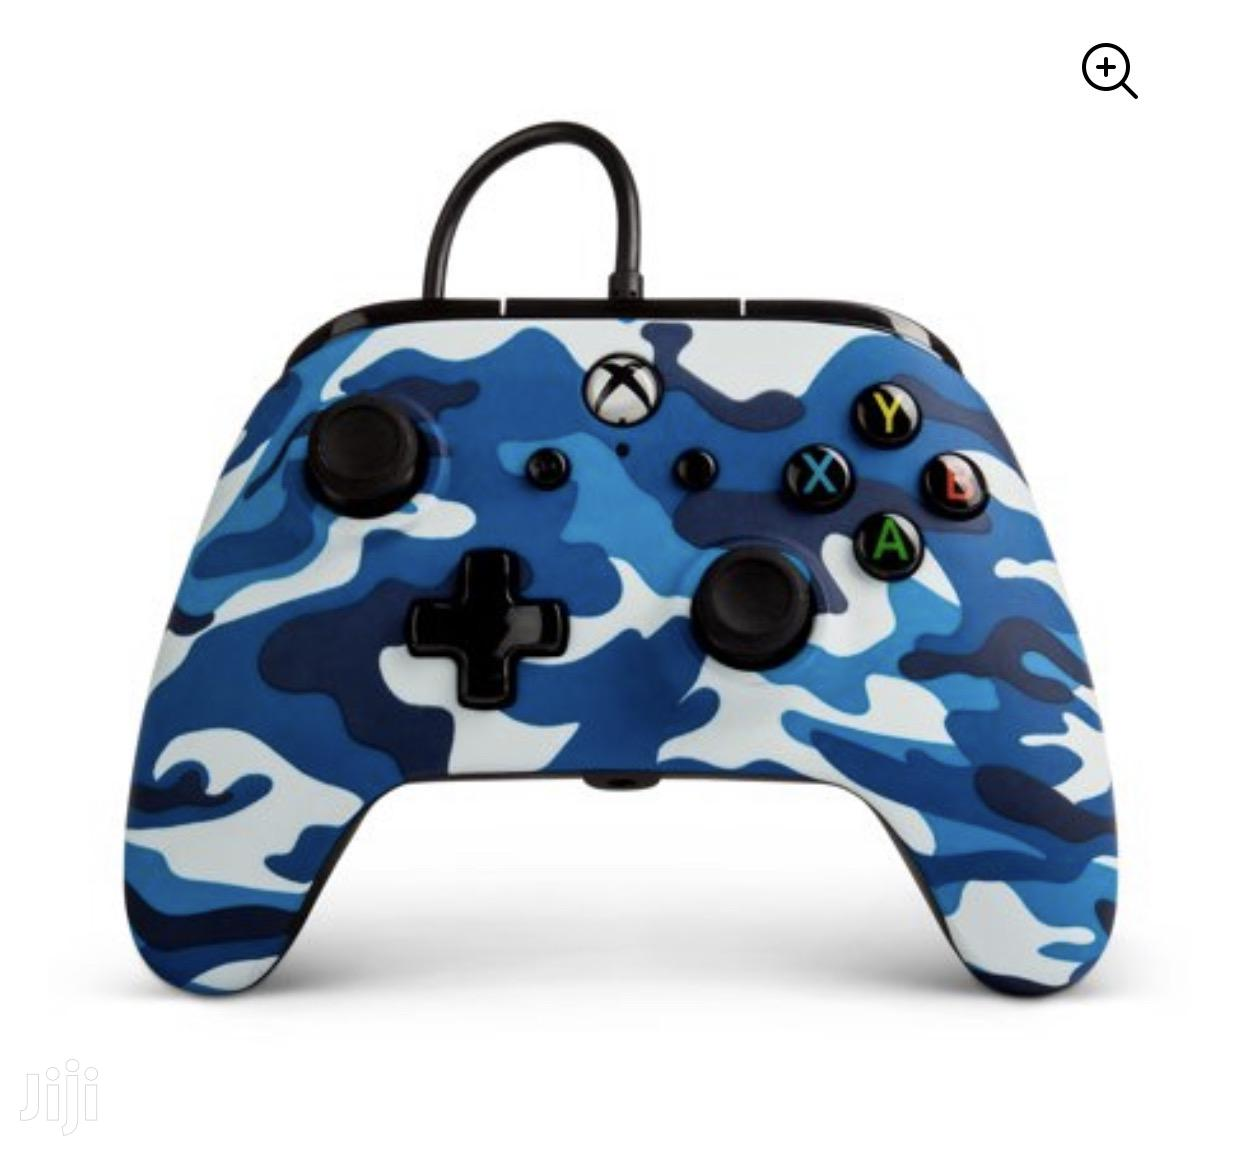 Xbox One Wired Controller for PC